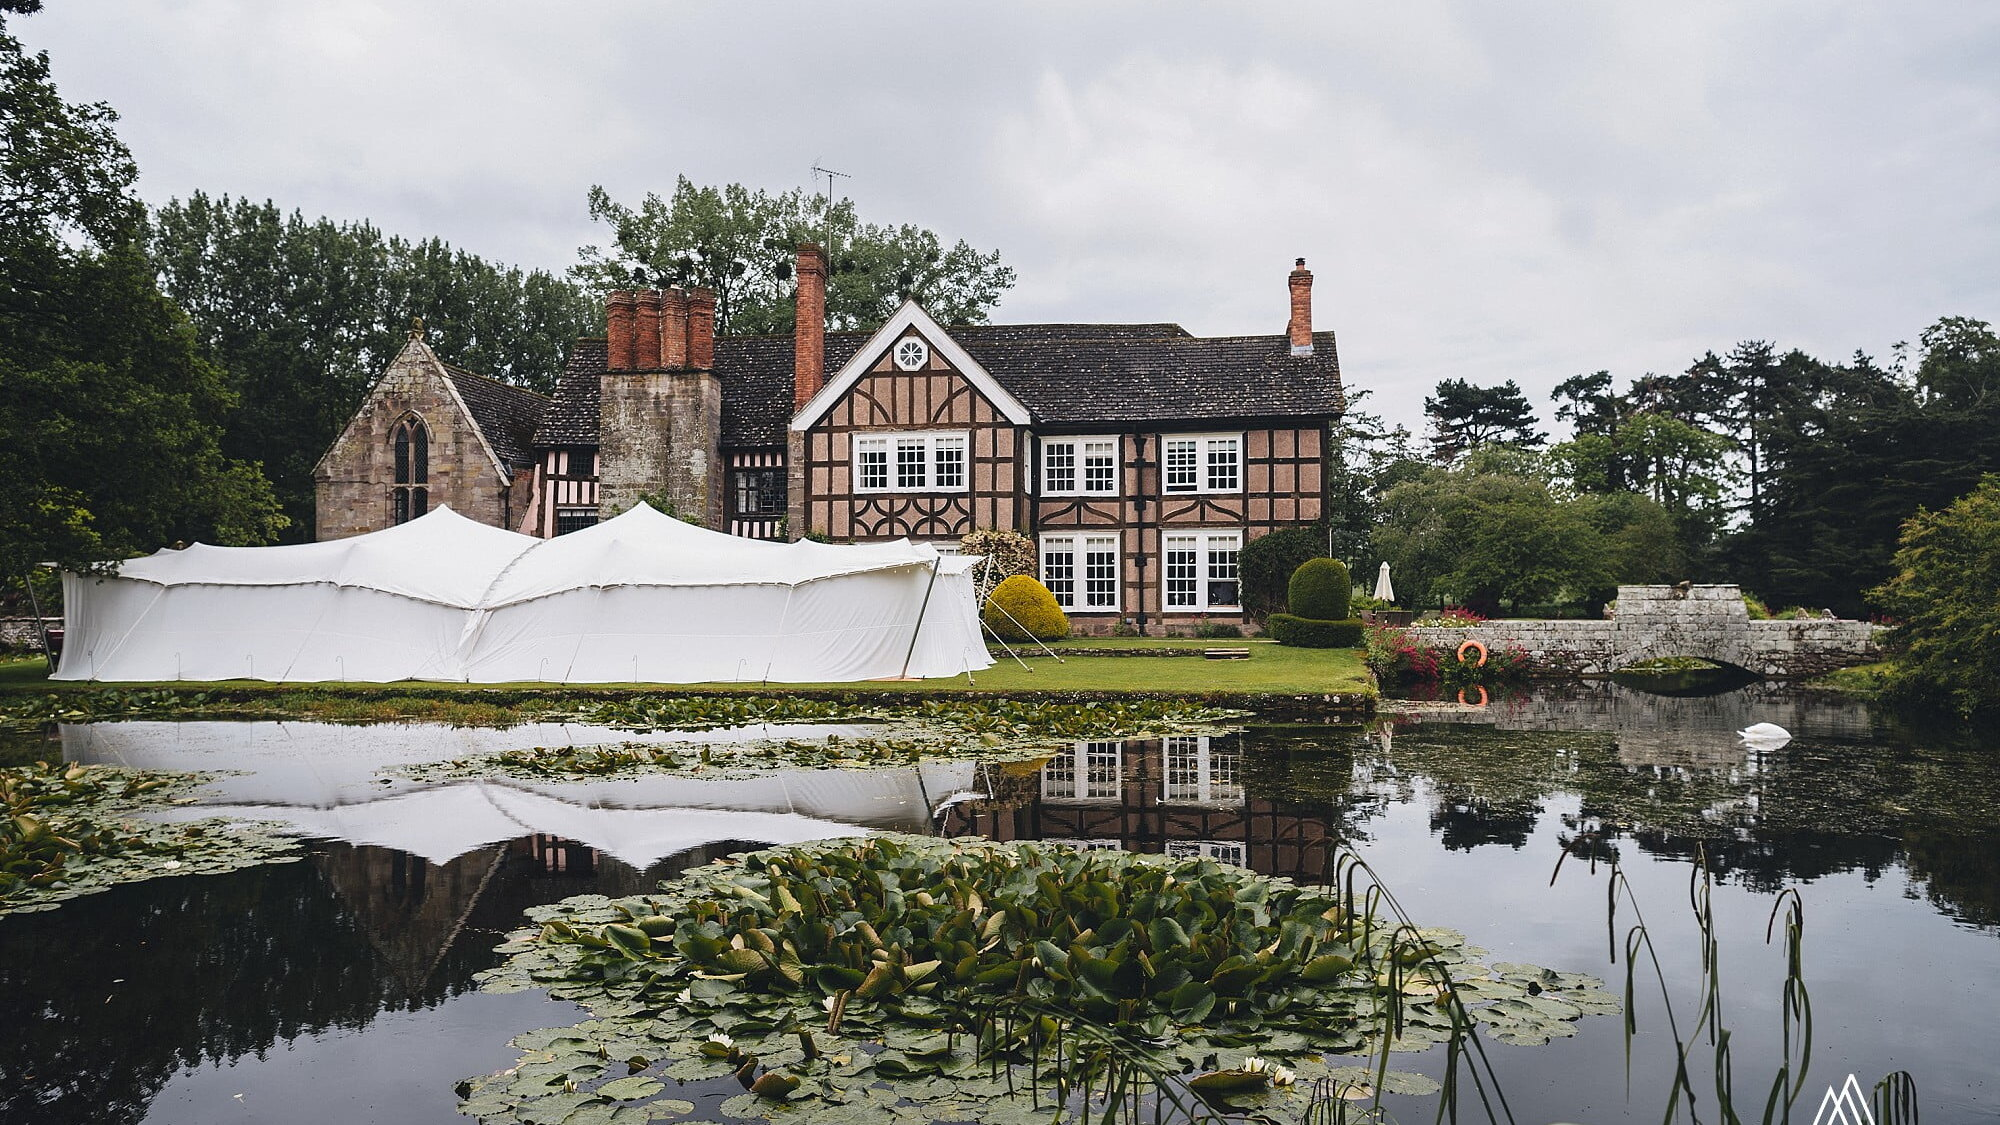 Herefordshire wedding venues near me Brinsop